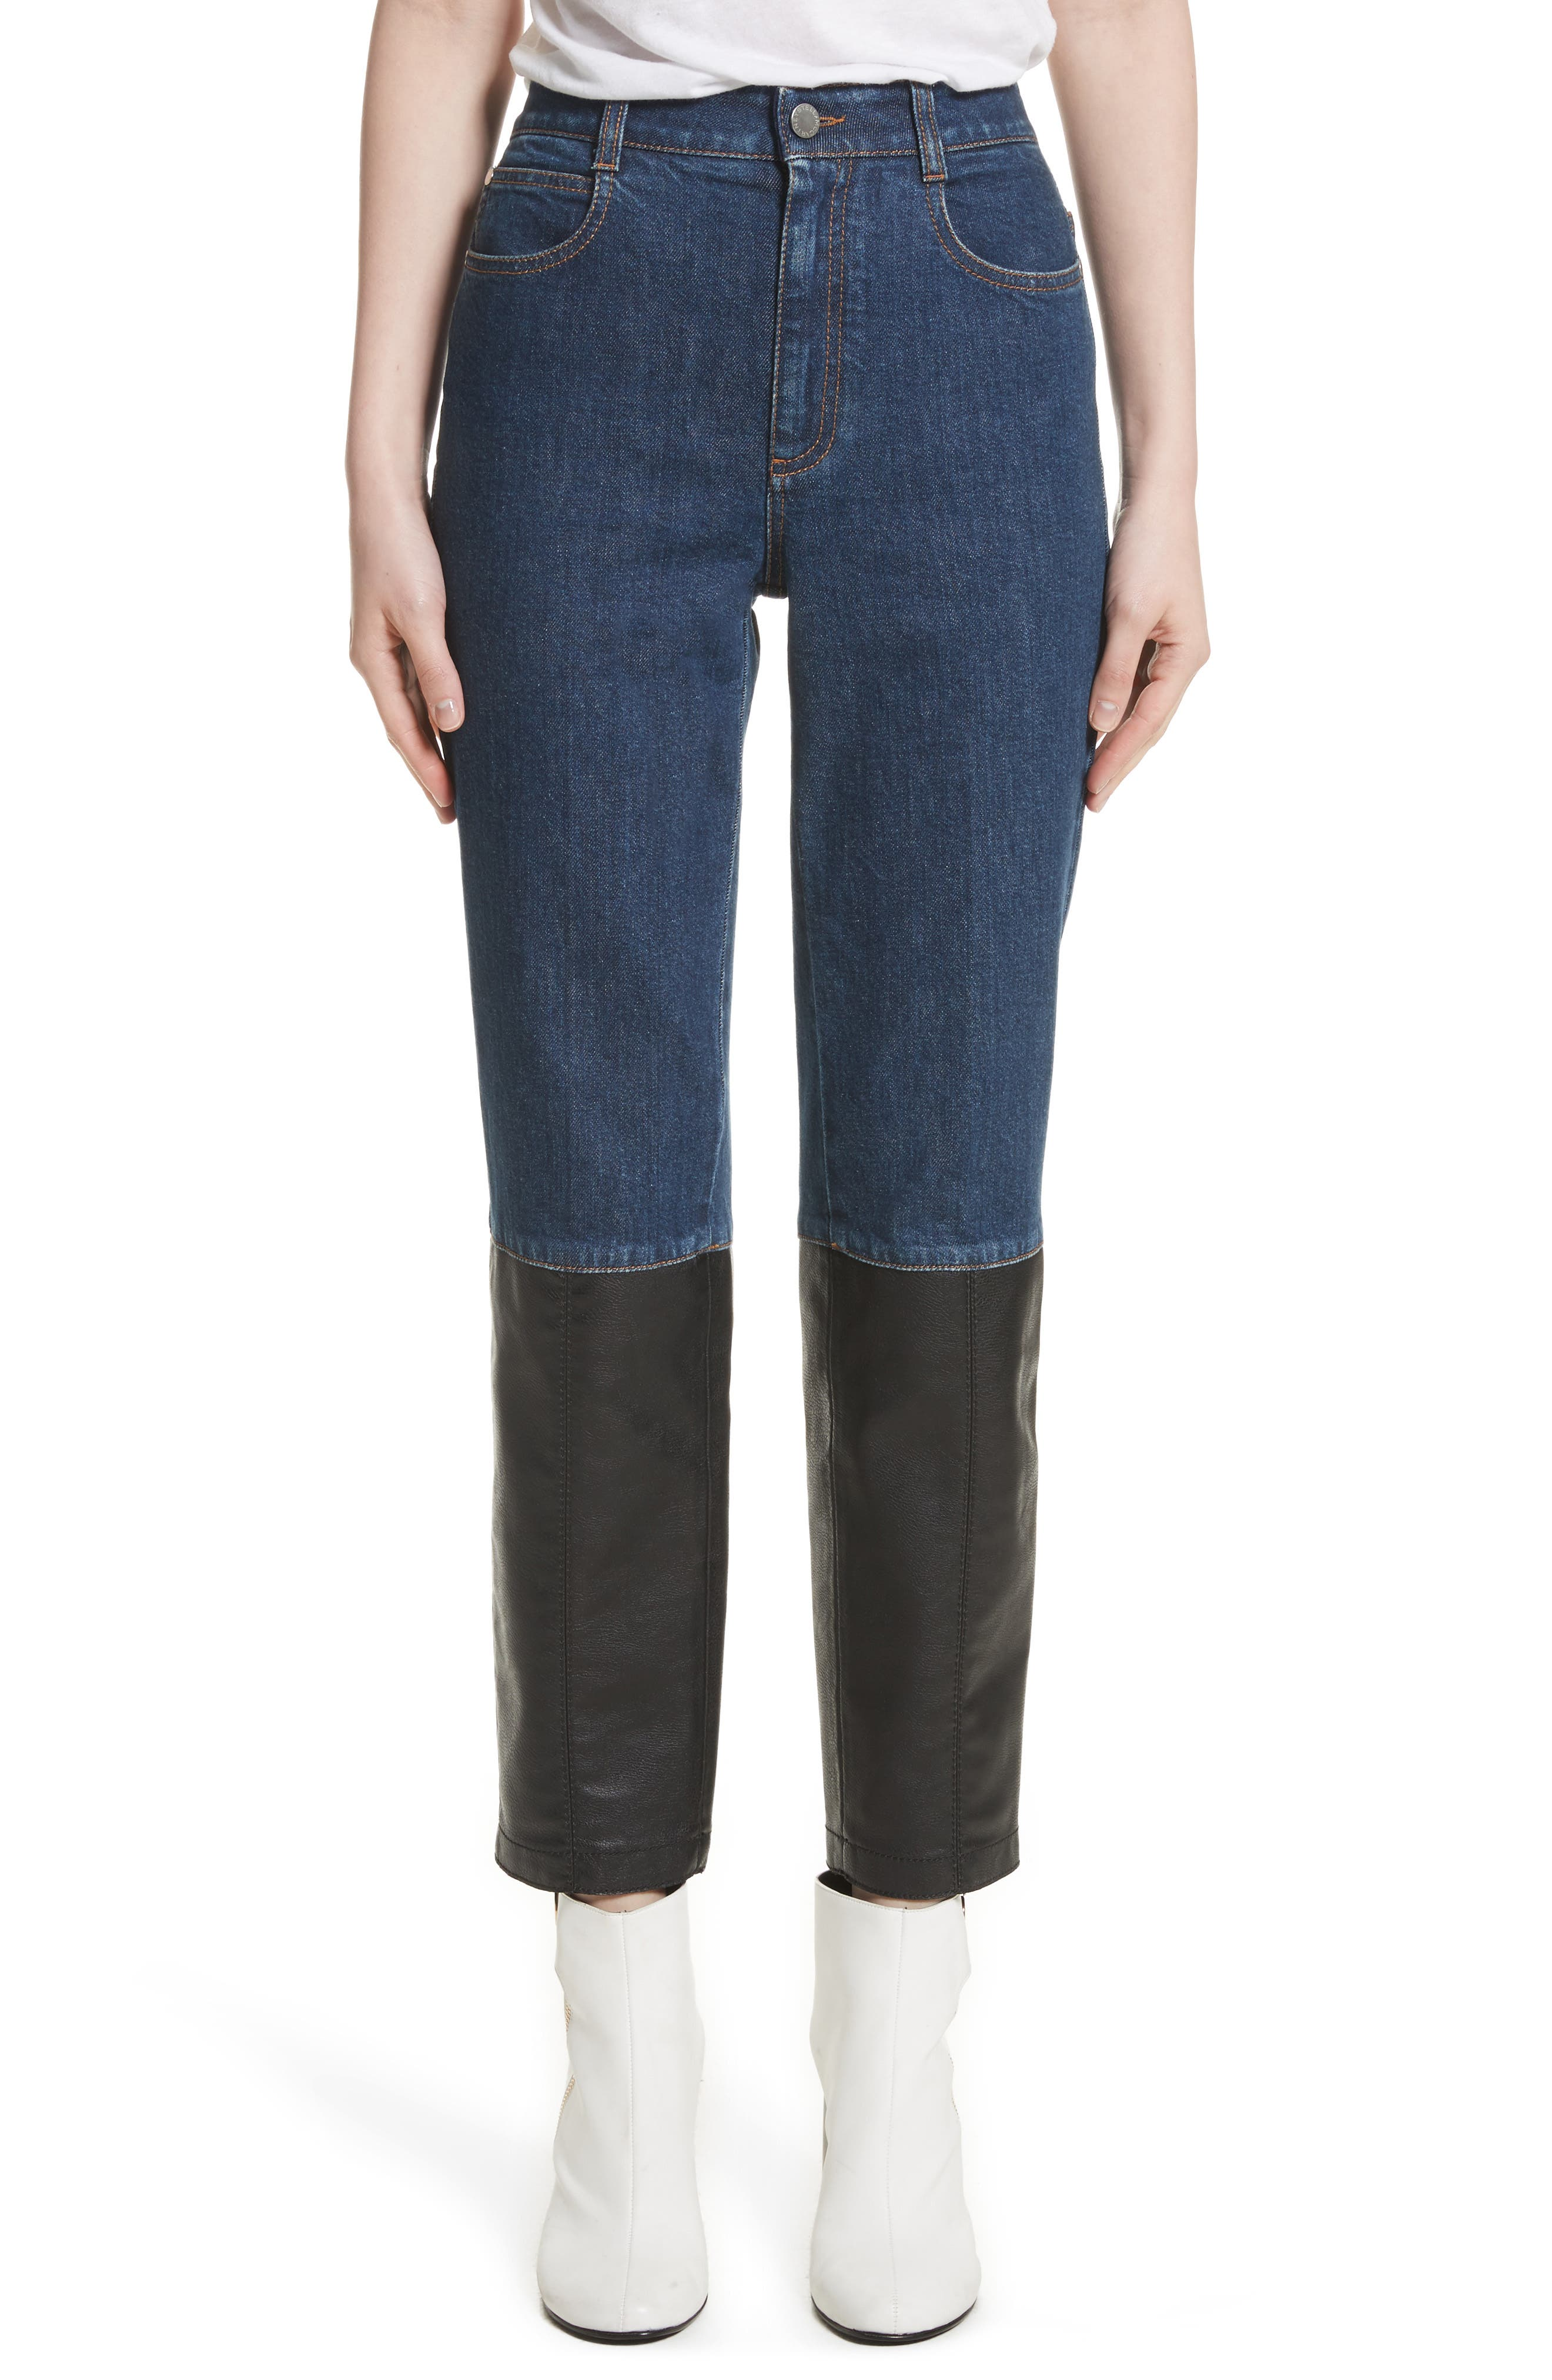 Alter Leather Trim High Waist Straight Leg Jeans,                         Main,                         color, 400